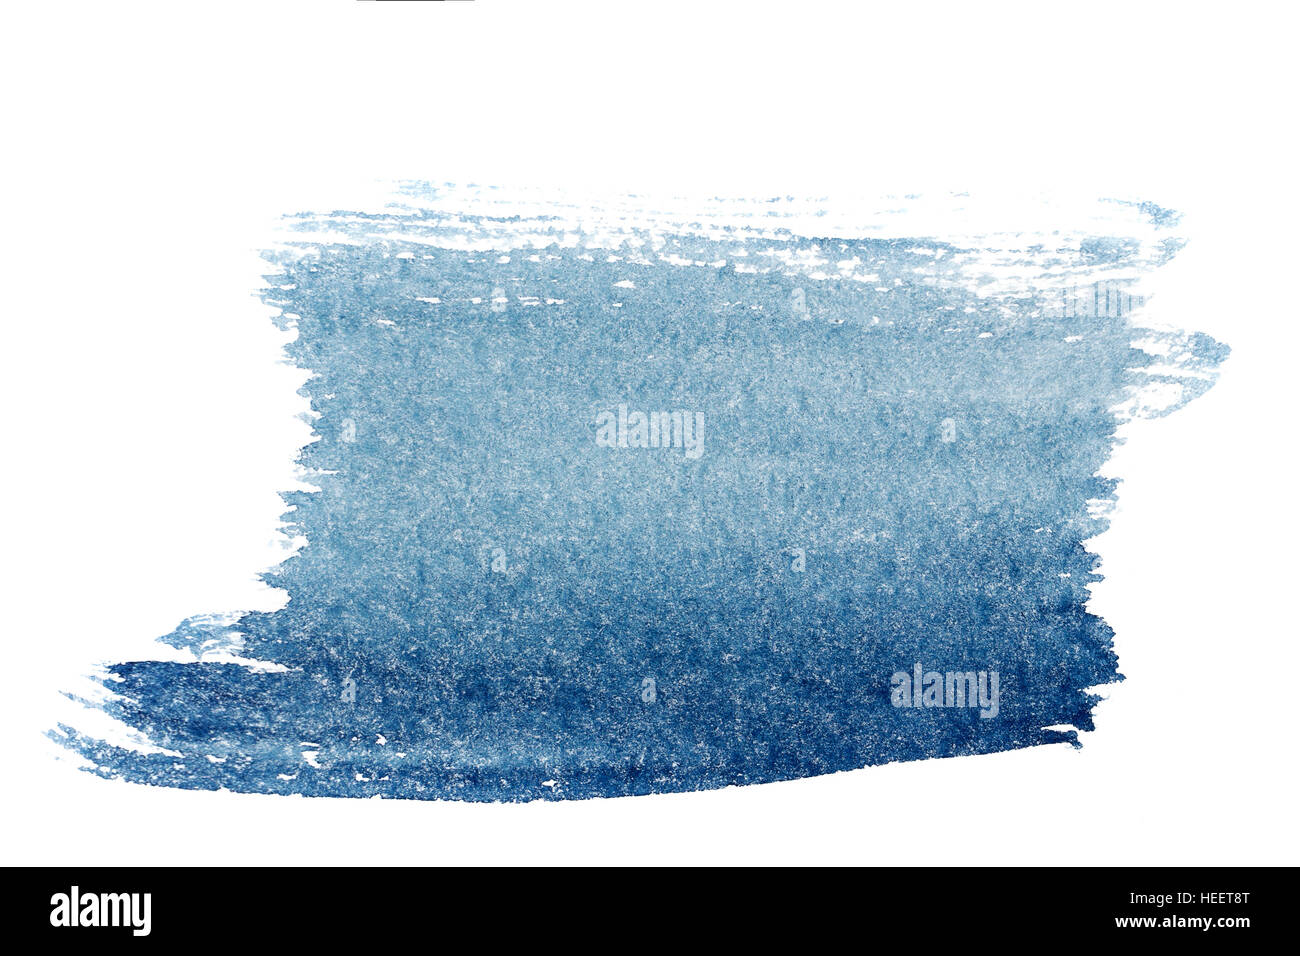 blue watercolor background the gradient color transition from the